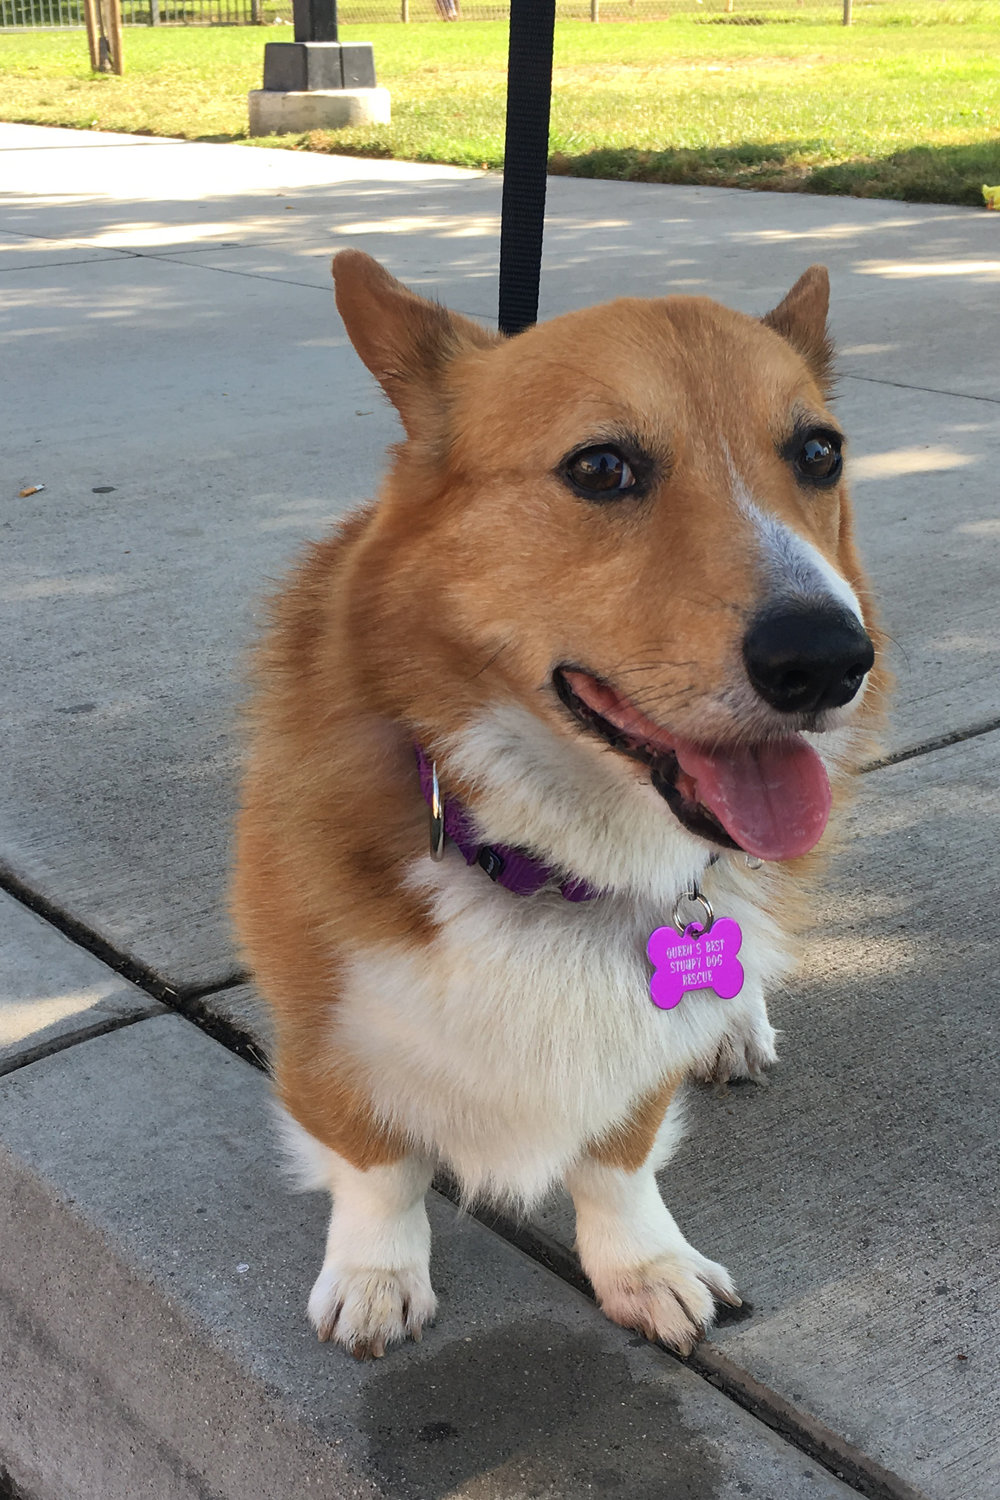 SAM Male, Possibly around 5 years old NEW TO RESCUE 8/11/2017! Found as a stray in Temecula by good samaritans. Very sweet demeanor. Sable coloring. Needs to be potty trained. Recently underwent emergency surgery to correct a large bilateral perineal hernia. While under,he was also neutered to help prevent the hernia from reoccurring. (THANK YOU TO ALL WHO DONATED!!!)